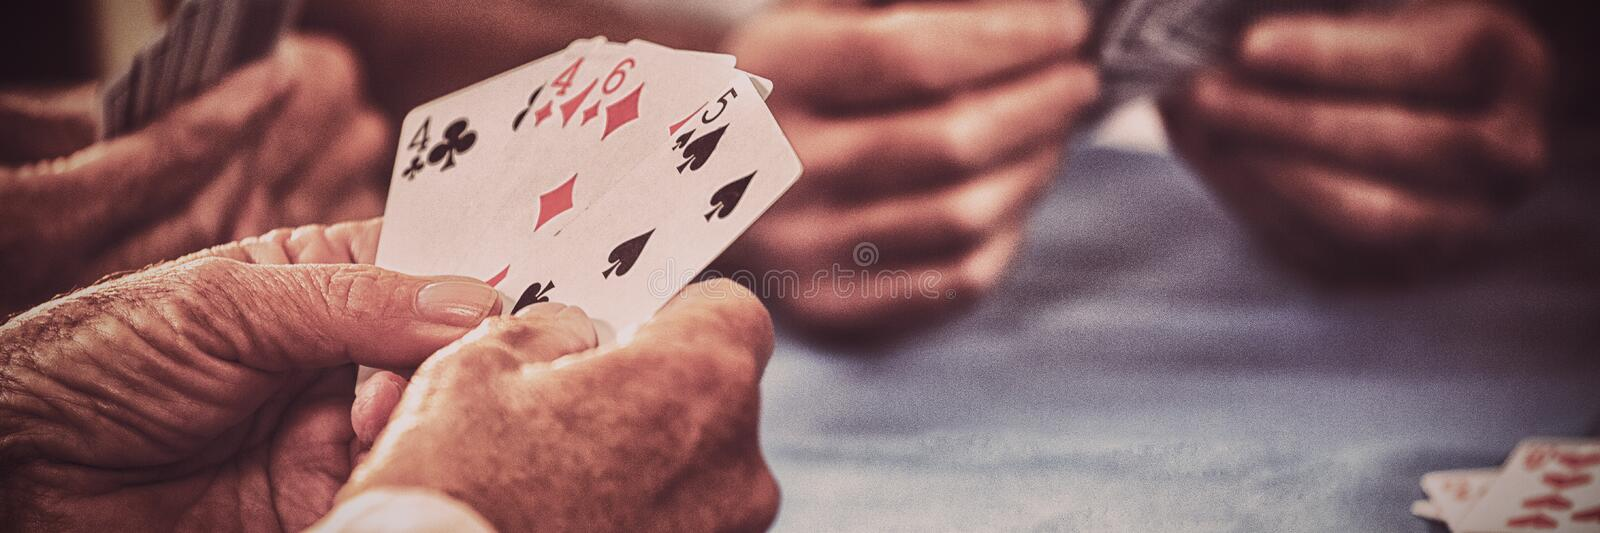 Retired people playing card royalty free stock photos